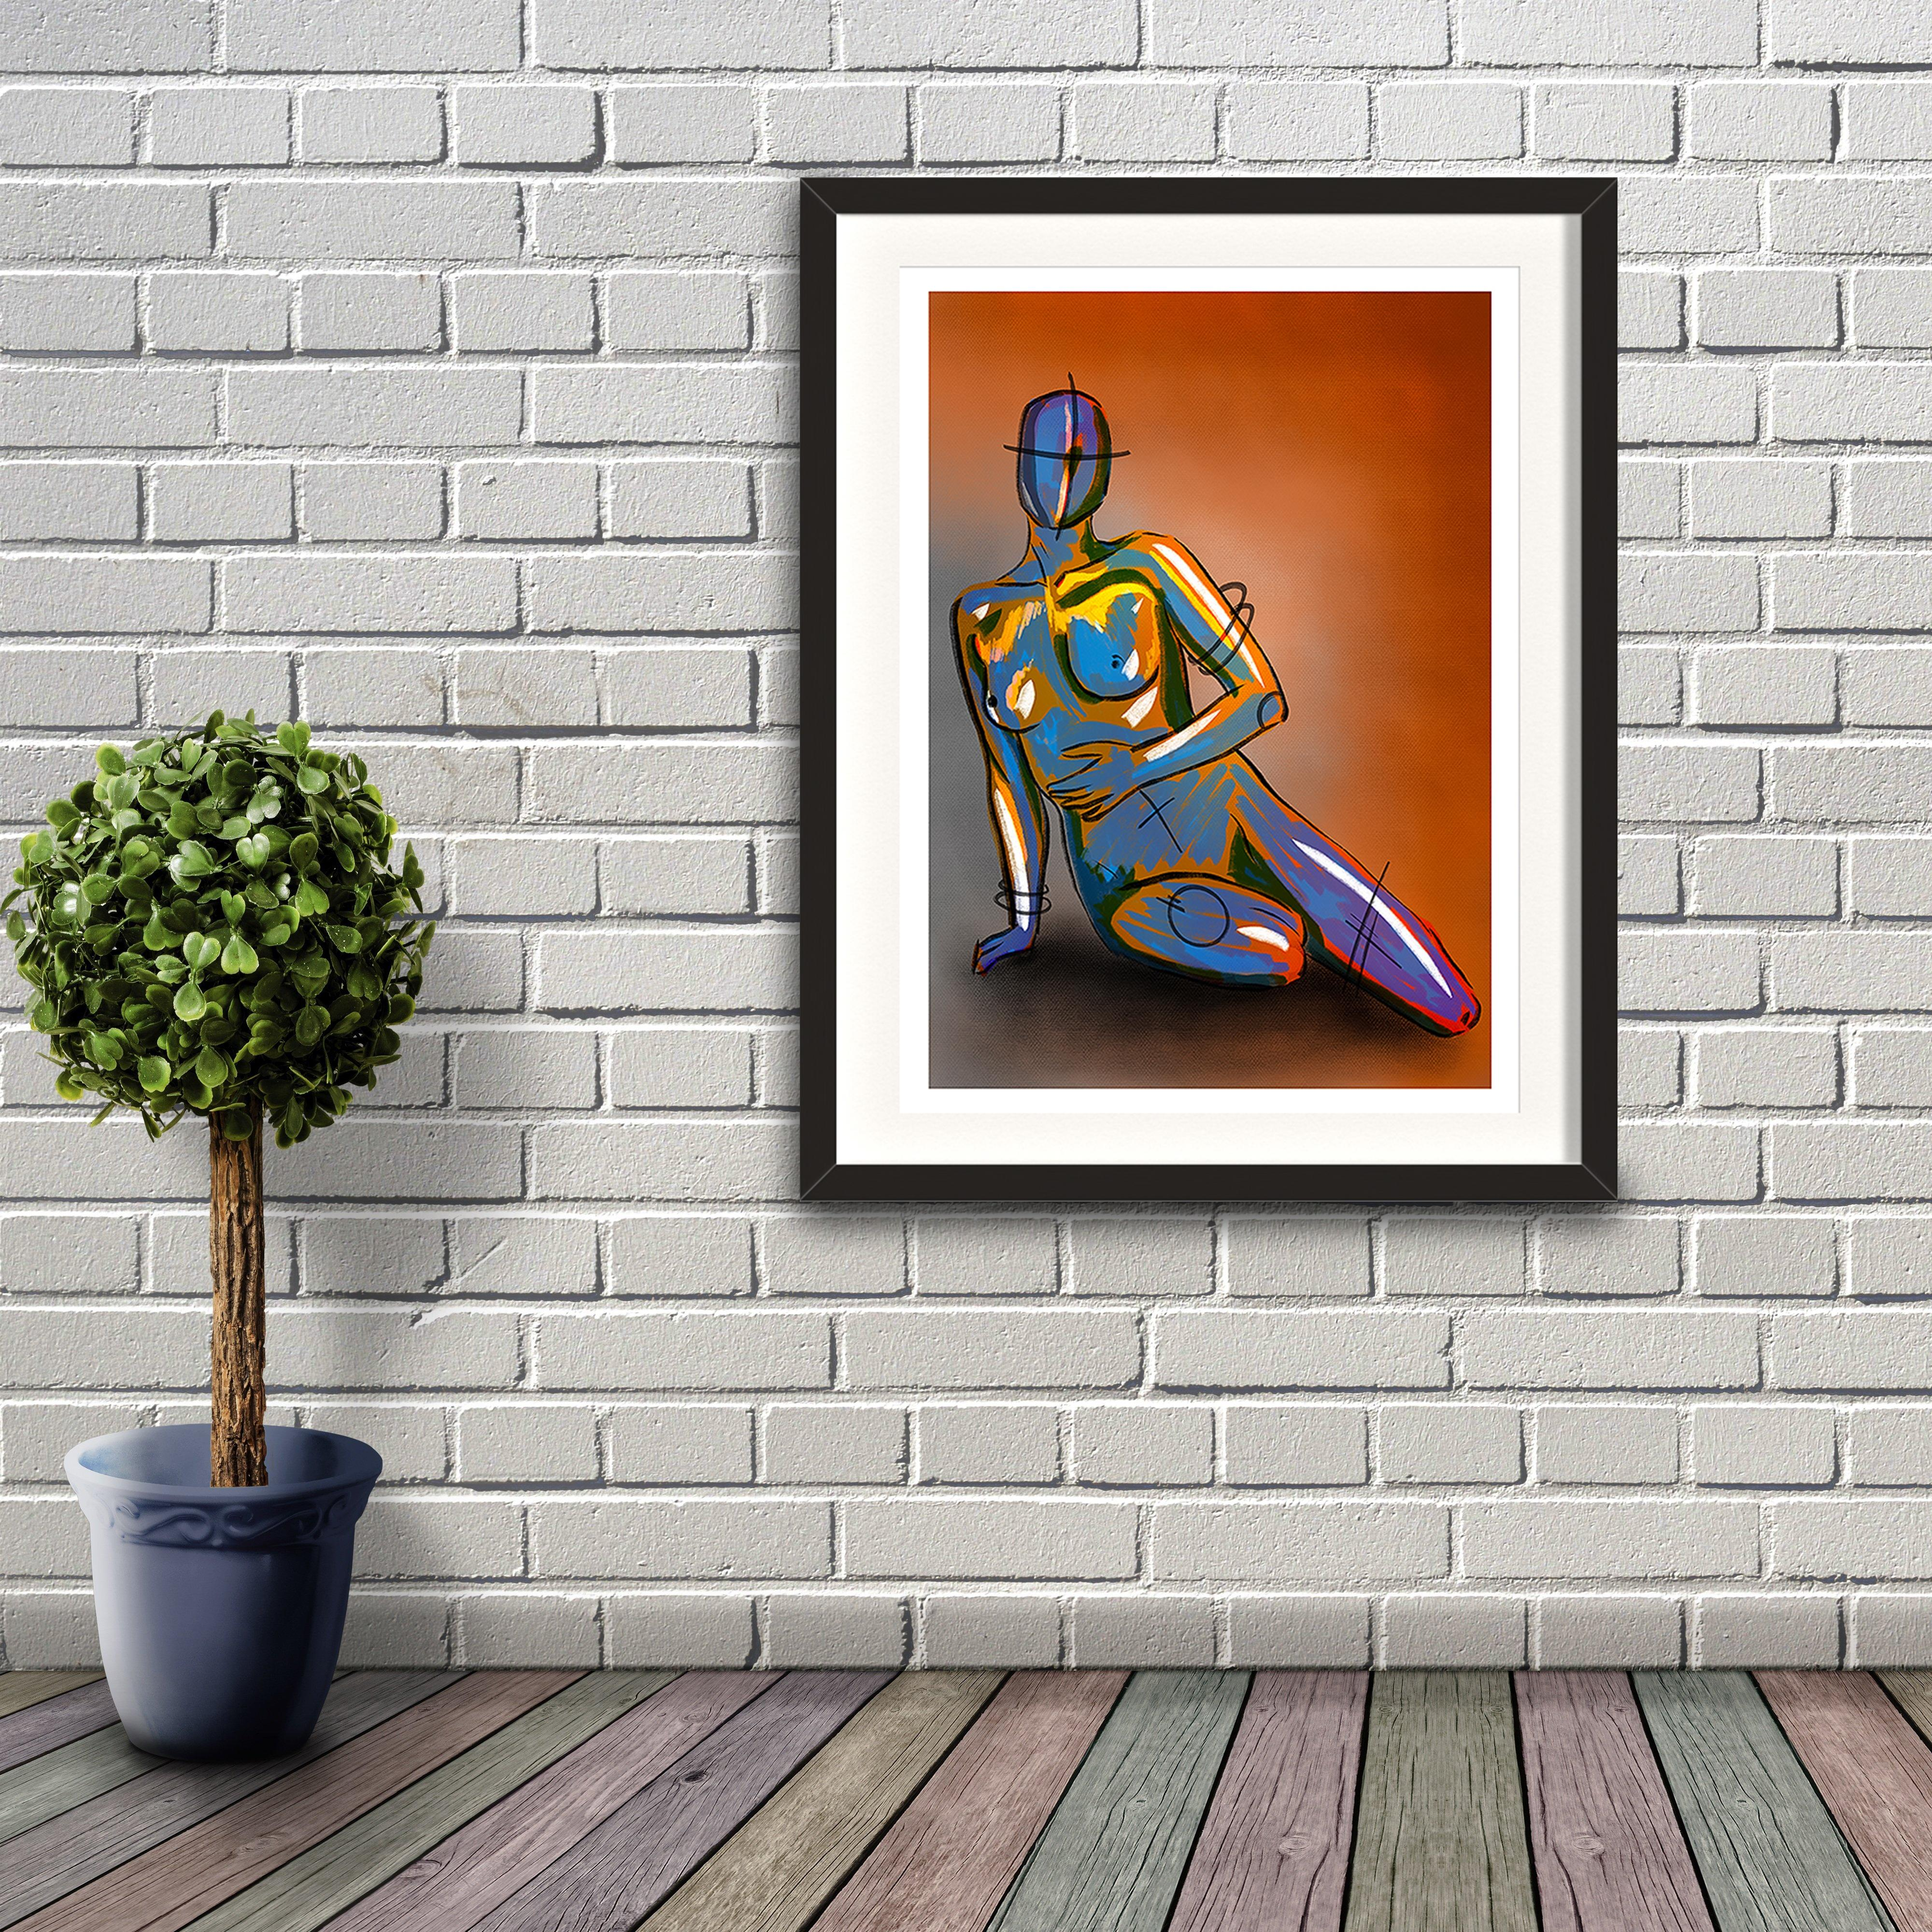 A digital painting called Naked Concept by Lily Bourne. A robotic figurine is sitting overlaid with yellow and lilac paint strokes. Orange and grey background. Artwork shown in a black frame hanging on a brick wall.